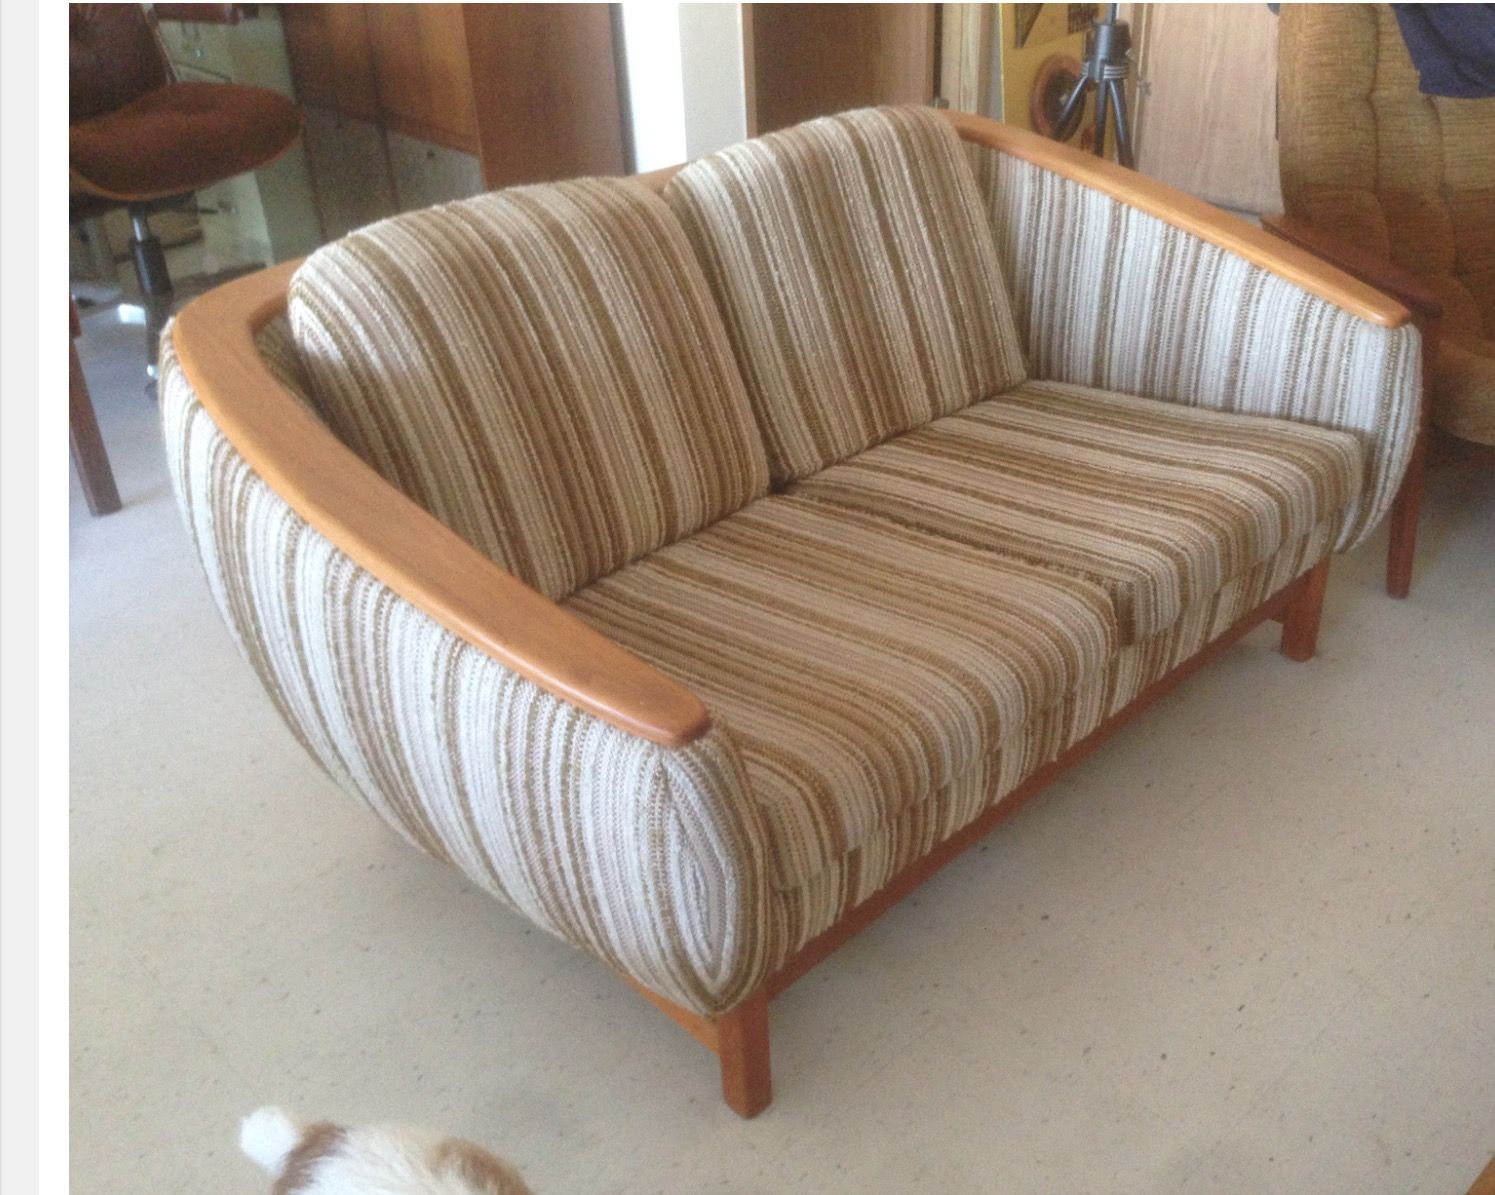 Kijiji Kitchener Furniture Pin By Ev On R Huber Co Furniture Pinterest